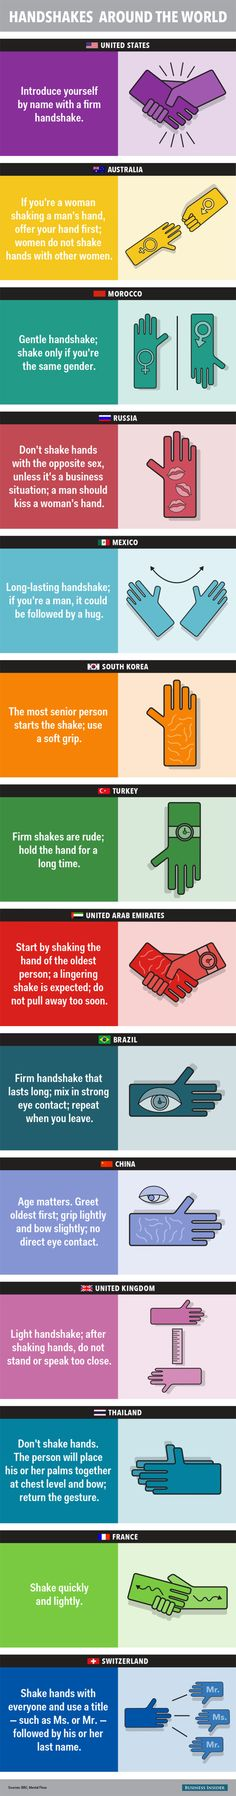 Be prepared to greet people wherever you go.  Proper Handshake Etiquette in 14 Countries | Mental Floss